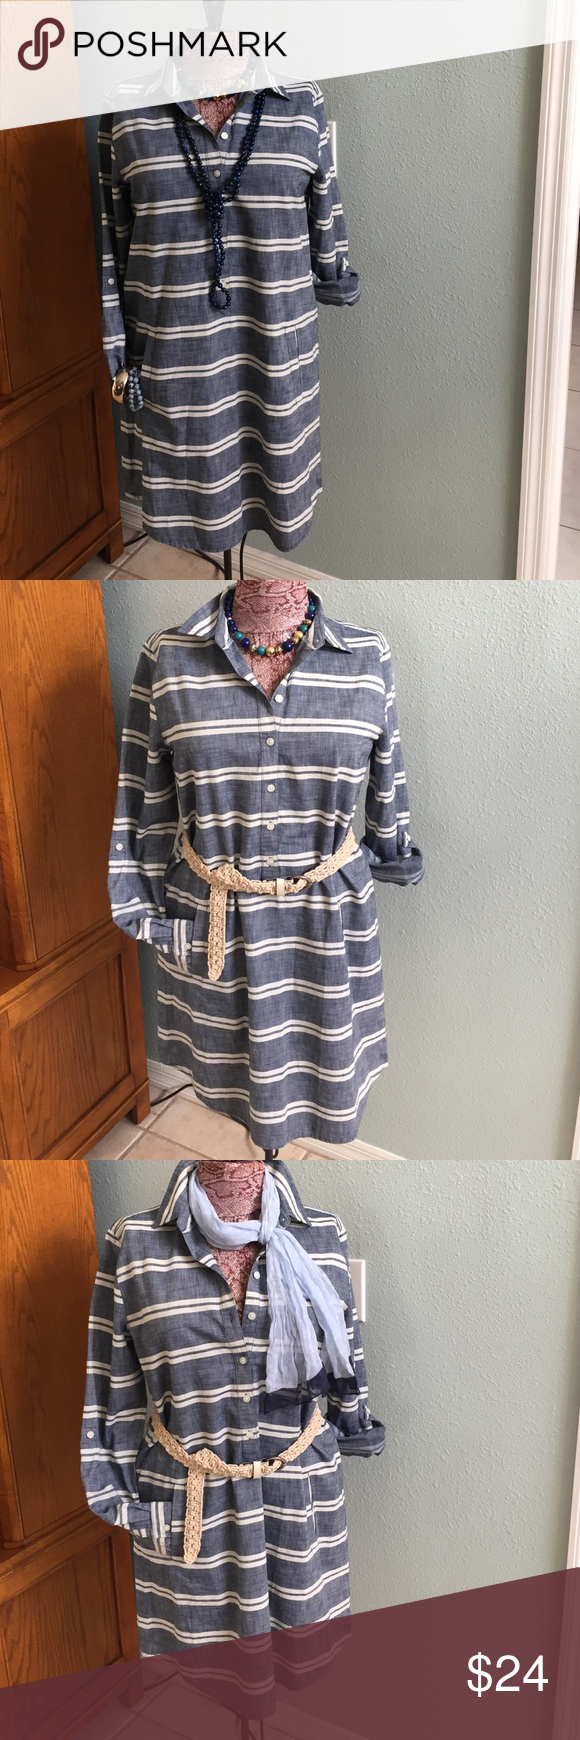 Ann Taylor striped chambray dress Ann Taylor, Sz 8, striped chambray dress, beautiful. Very popular, sold out everywhere. Light weight denim colored chambray, with off white stripes, 6 button closure, roll tab sleeves, 2 hip pockets, and collar. Simple, chic, and stunning. Perfect for work, play, dress up or down. 32in in length, 💯% cotton, NWOT💙 Ann Taylor Dresses Midi